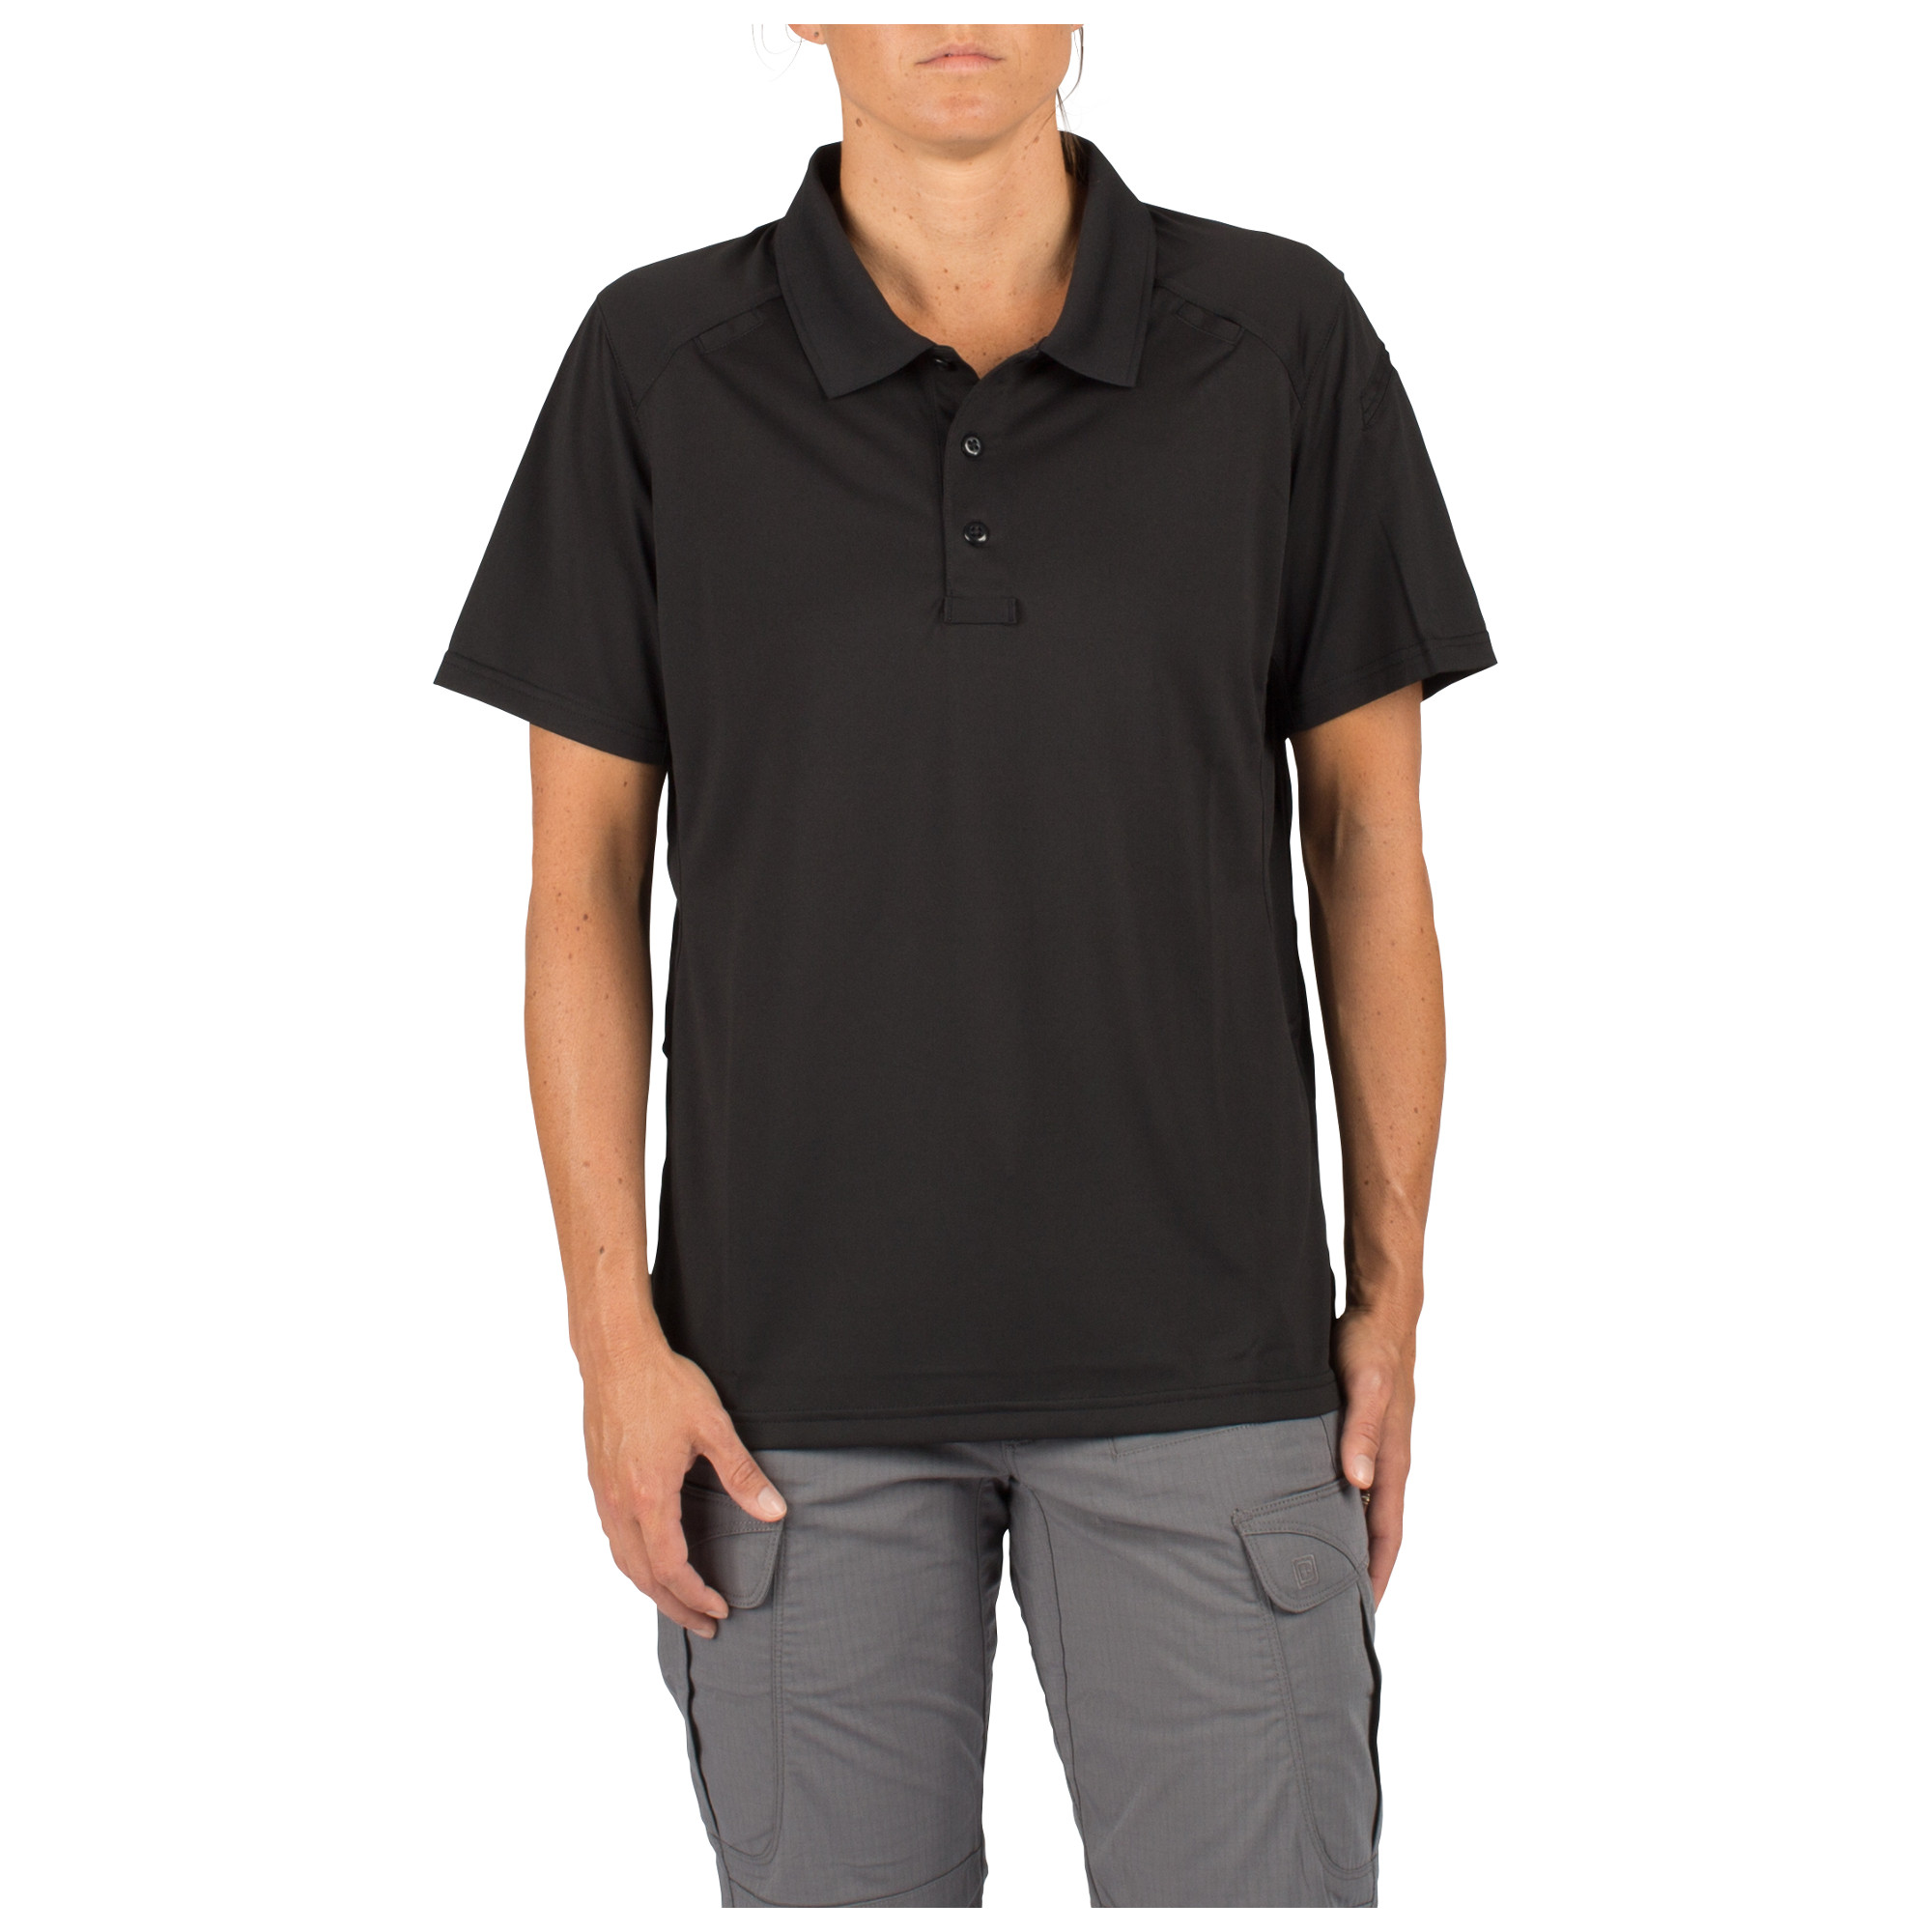 41cf66082 5.11 Tactical Polyester Polo Shirt - Moisture Wicking Performance ...